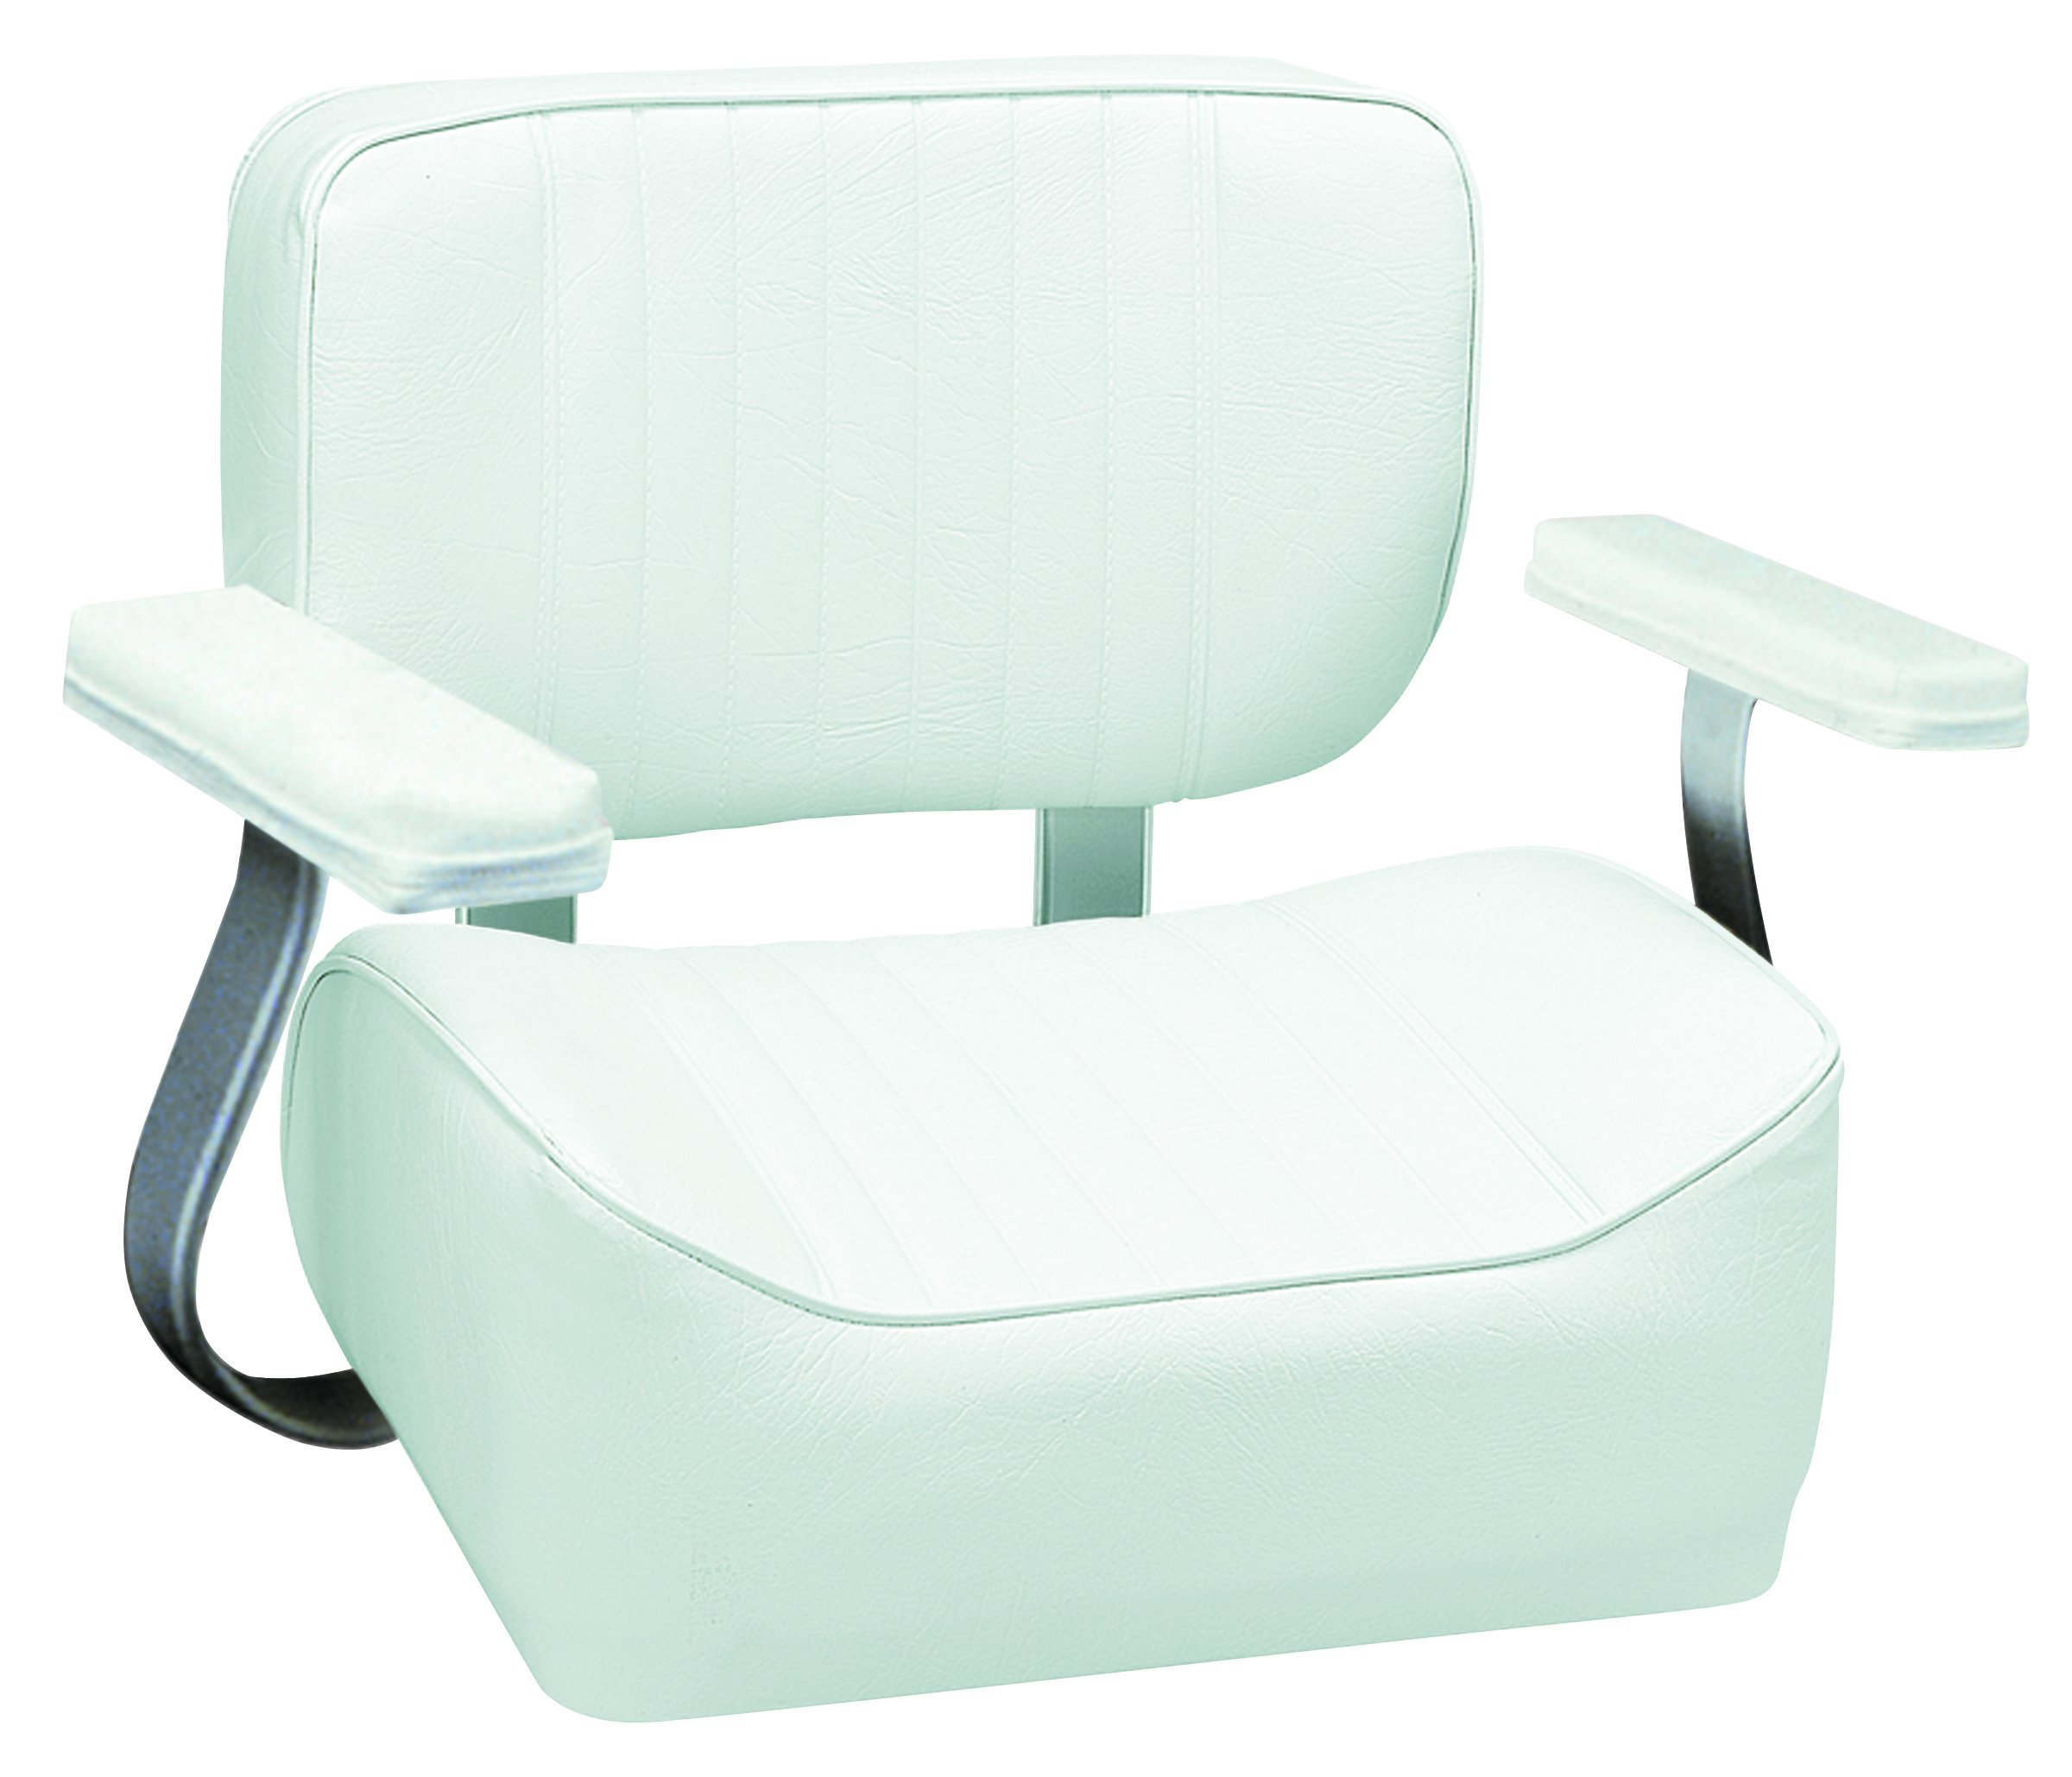 Wise 8WD431AR-710 Helm Seat with Arm Rests, White by Wise